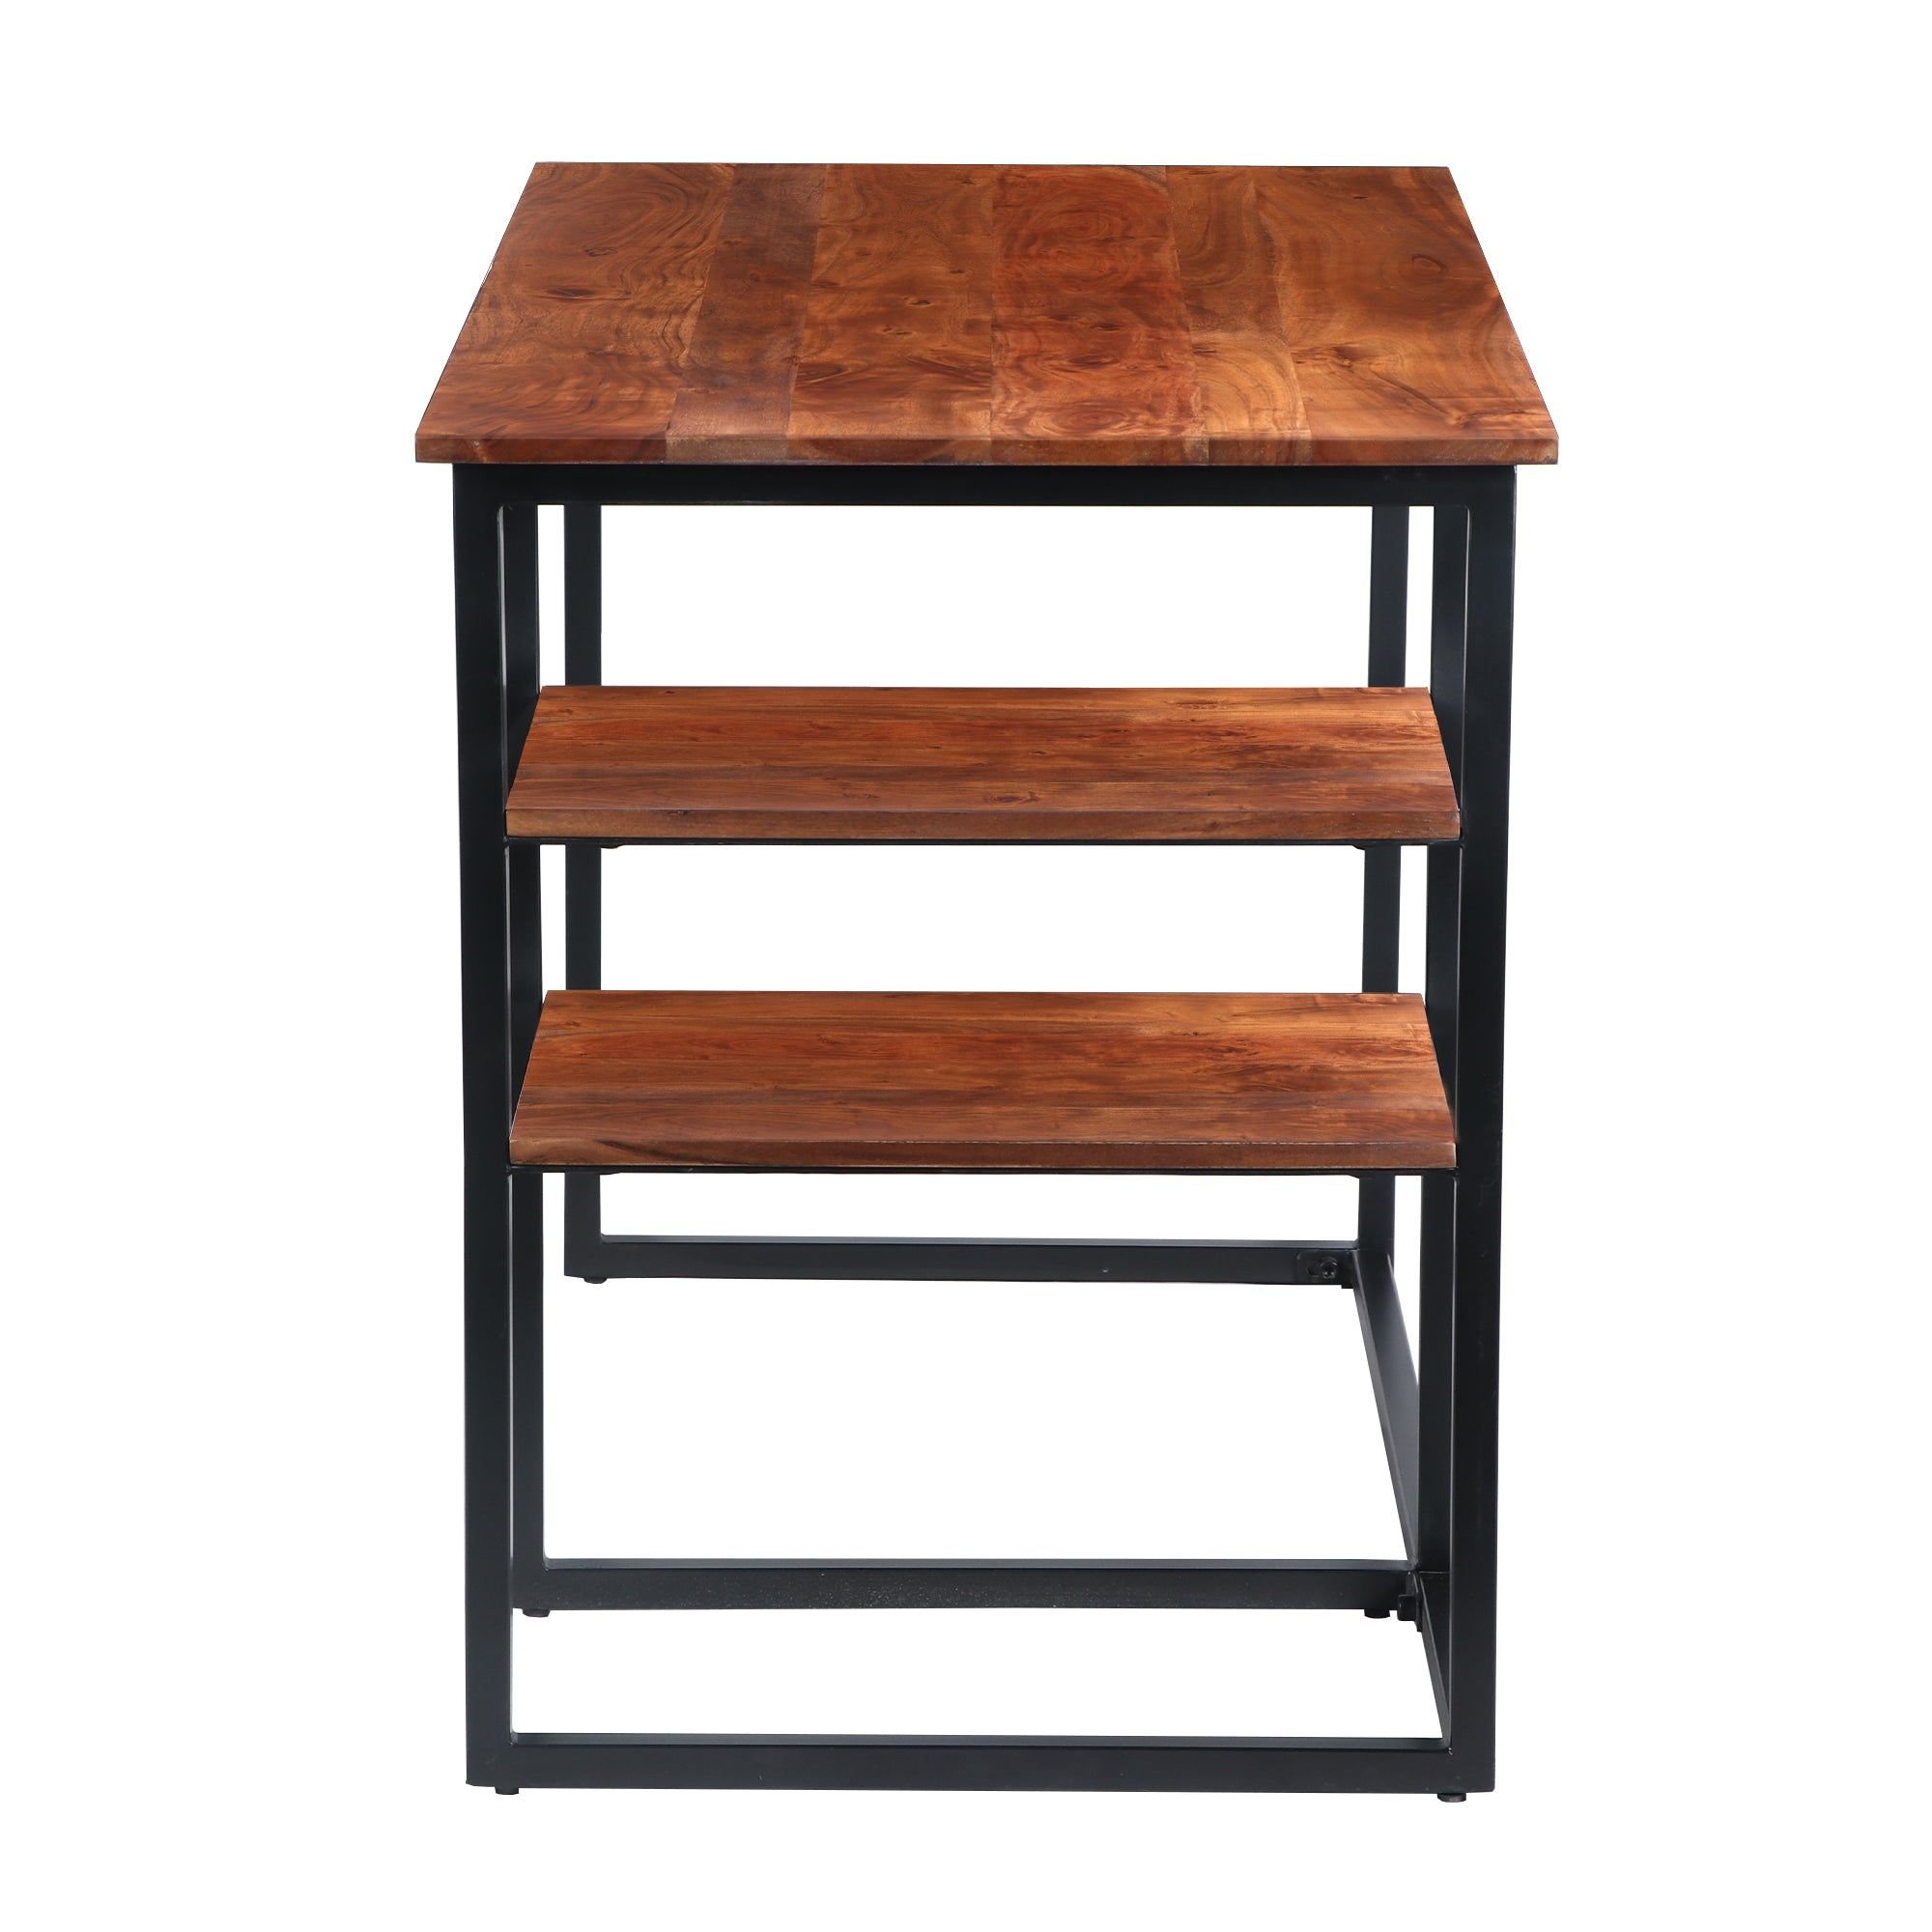 The Urban Port UPT-195123 Metal Frame Desk with Wooden Top